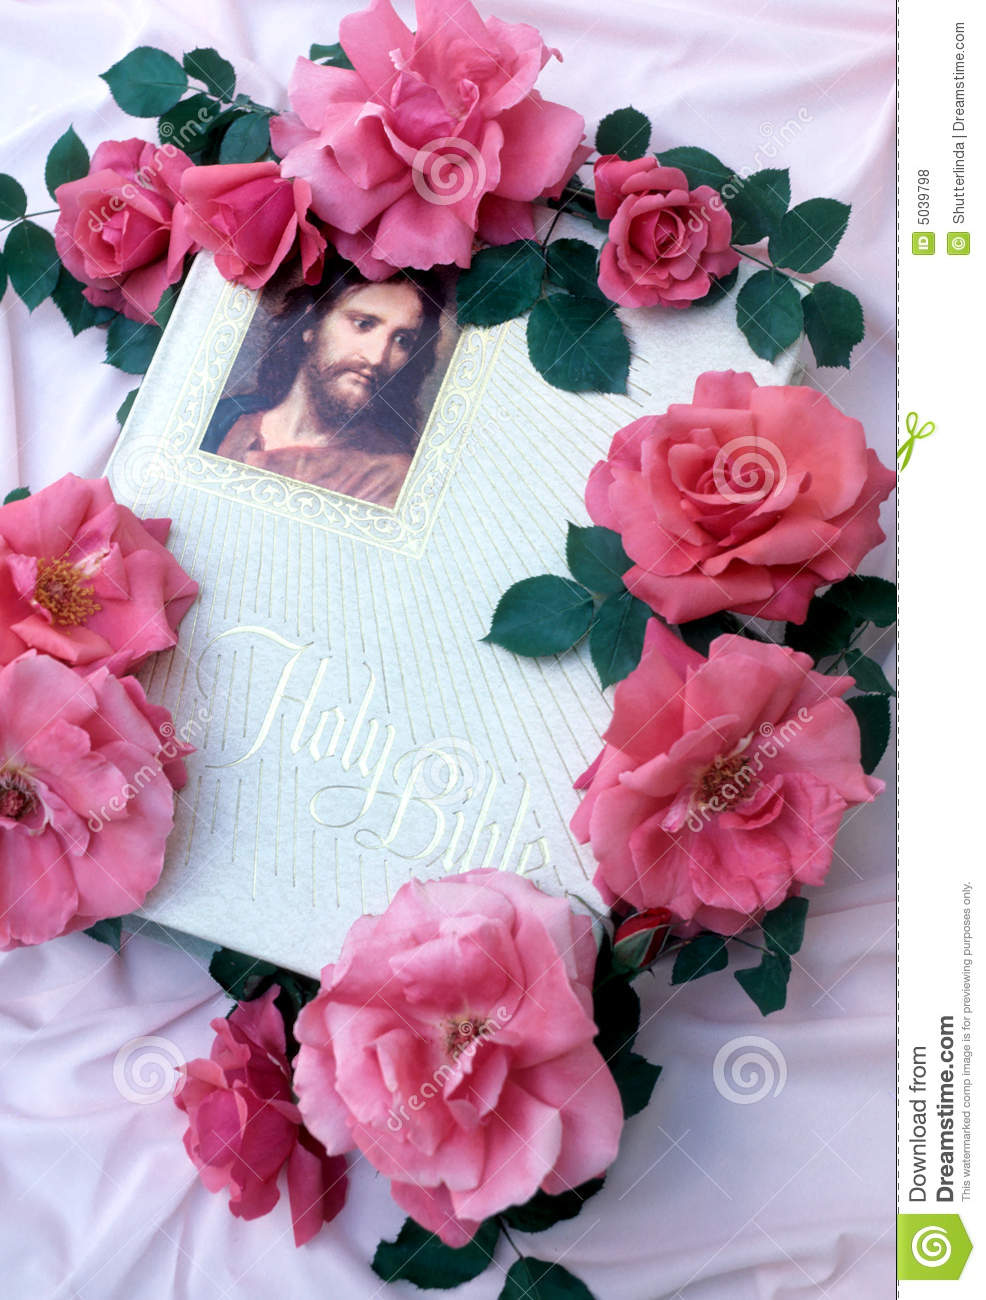 Decorated bible royalty free stock photos image 5039798 for Decorated bible